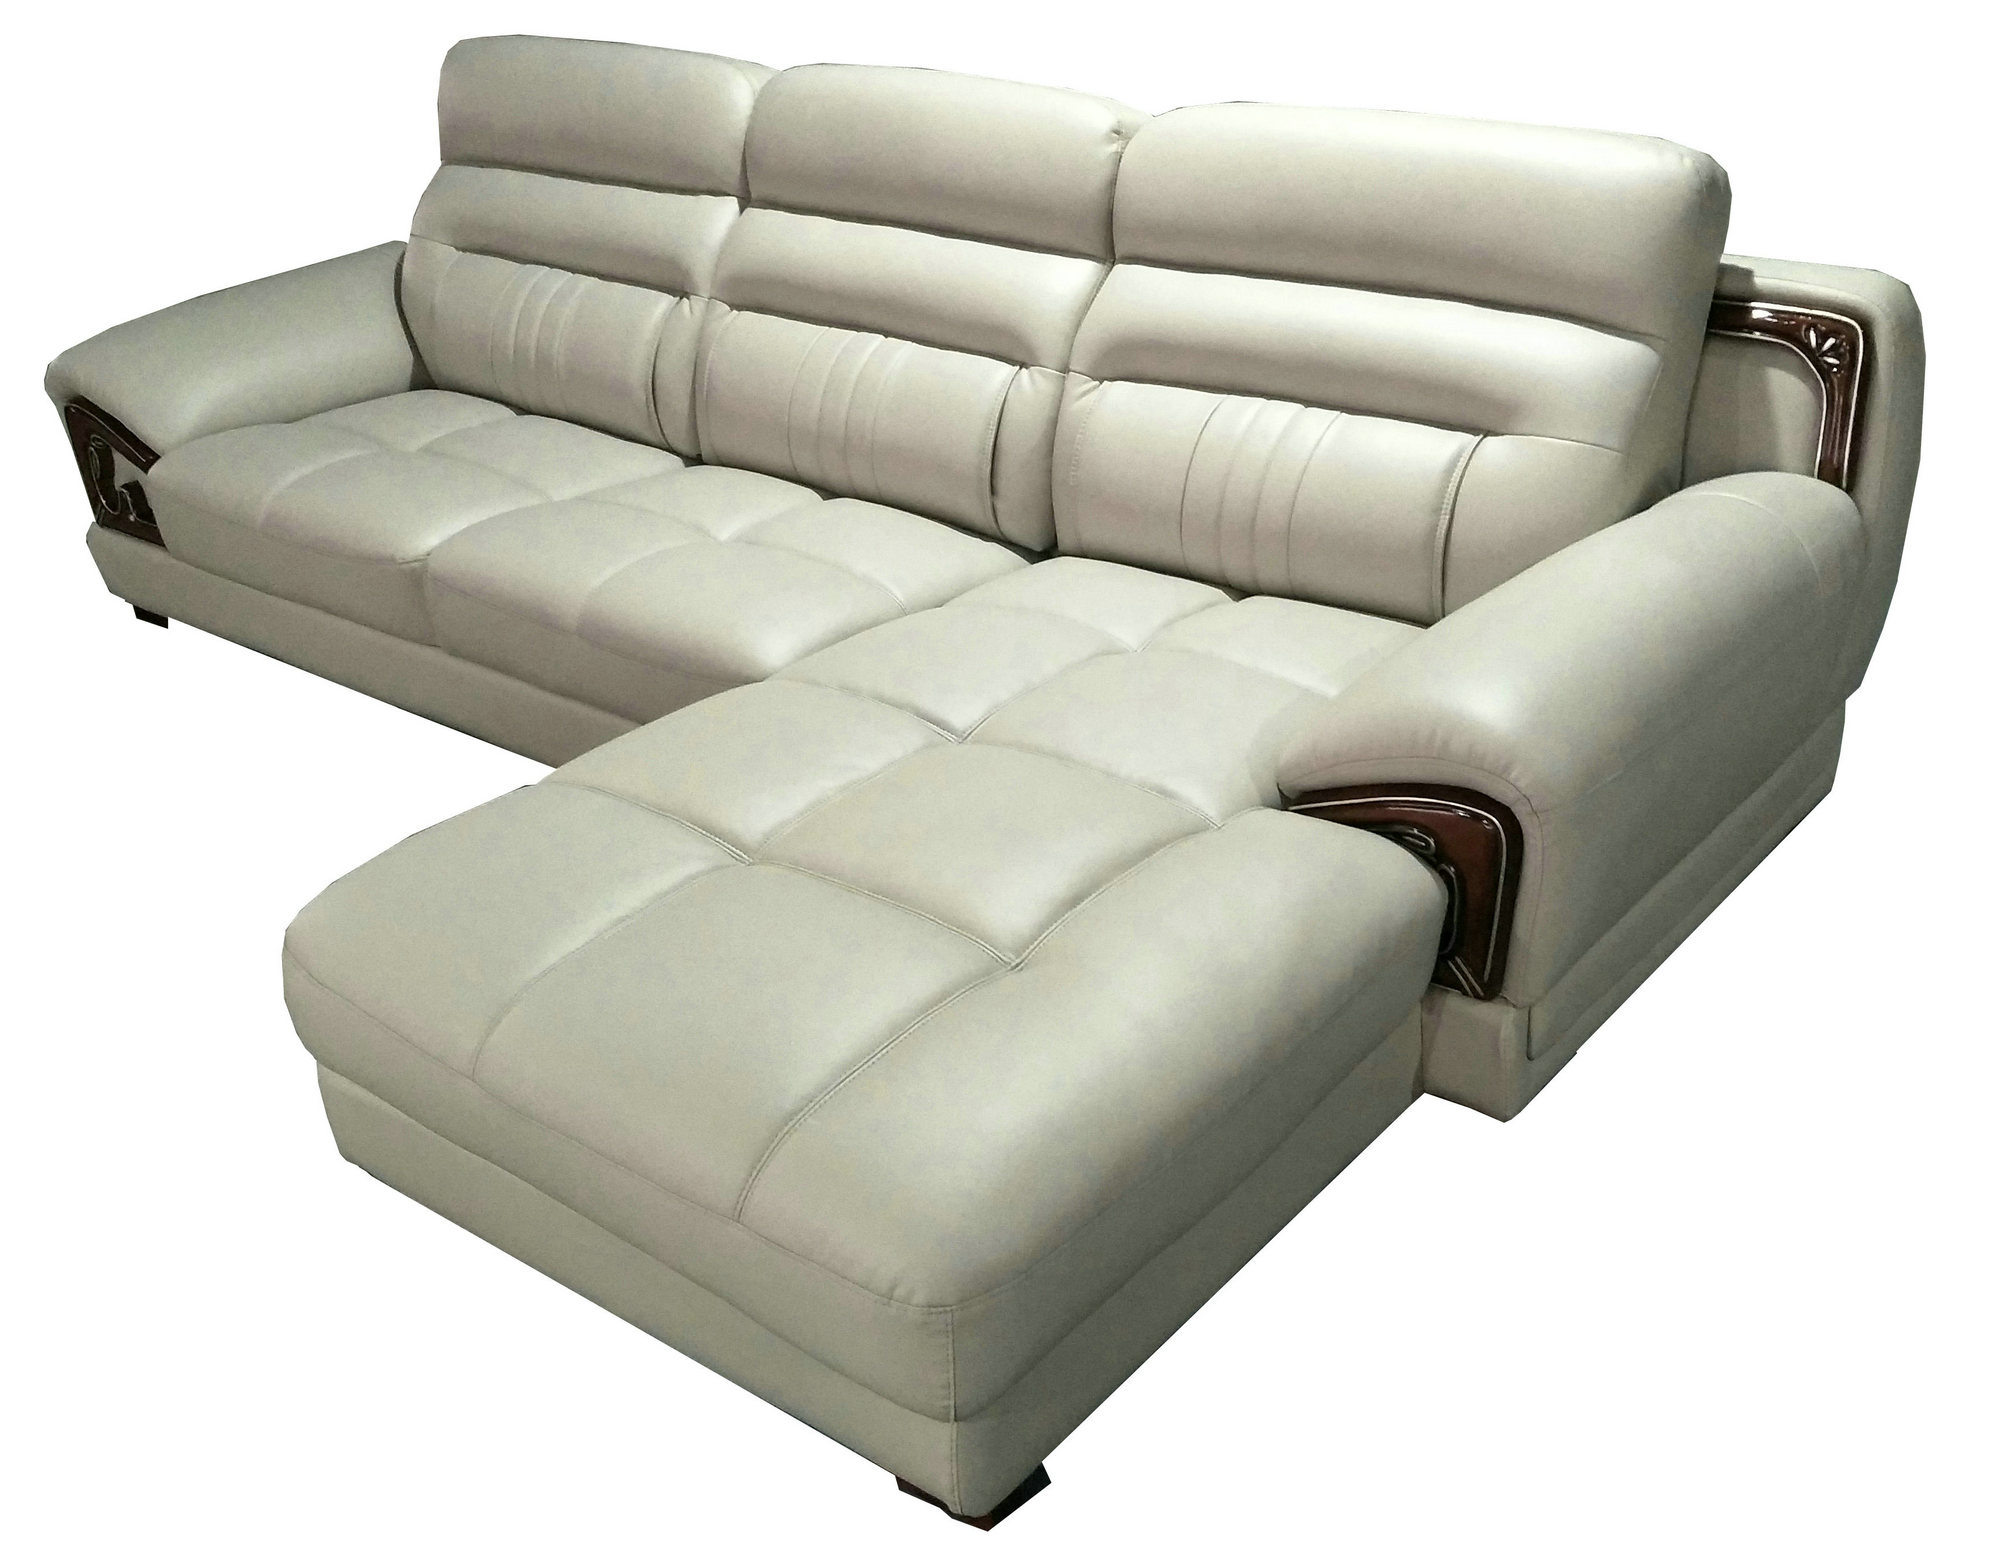 Sofa Service Hot Item Long Service Life Chinese Furniture Hotel Lobby Sofa A843